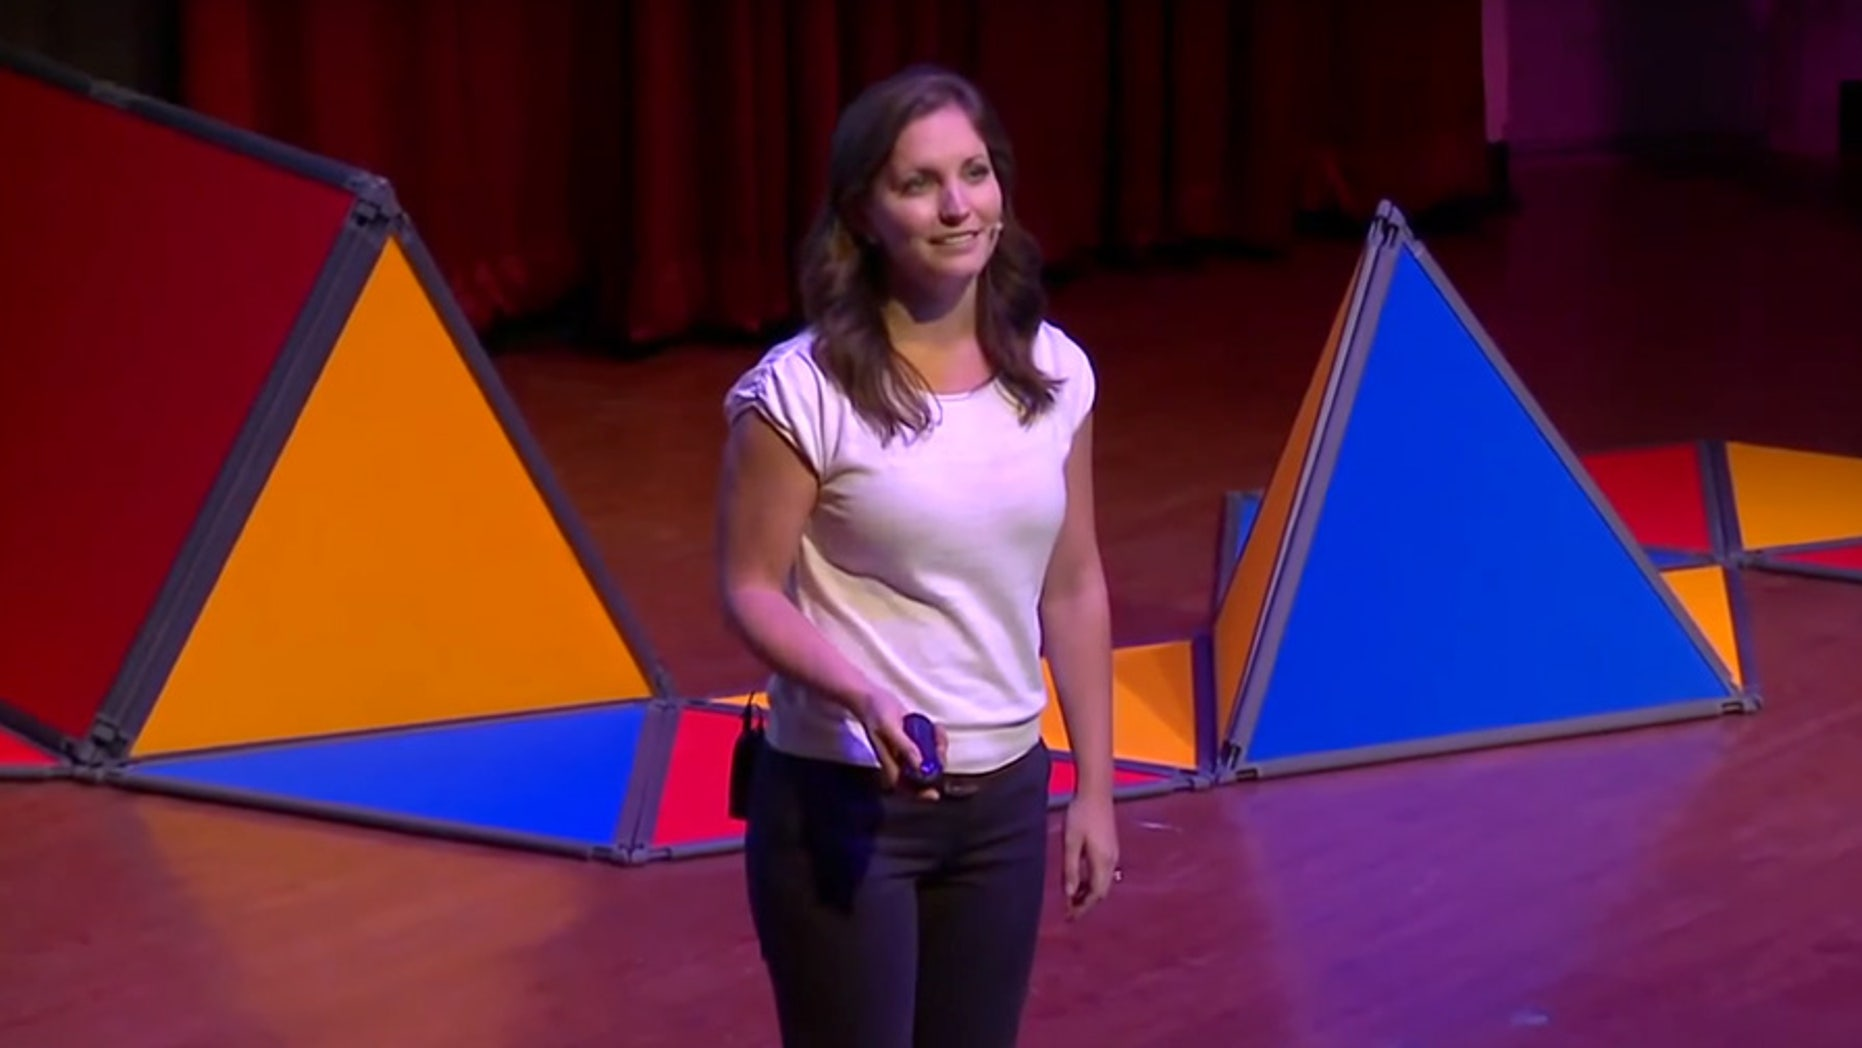 Emily Lindin addresses a TedxYouth event in Toronto in 2013.